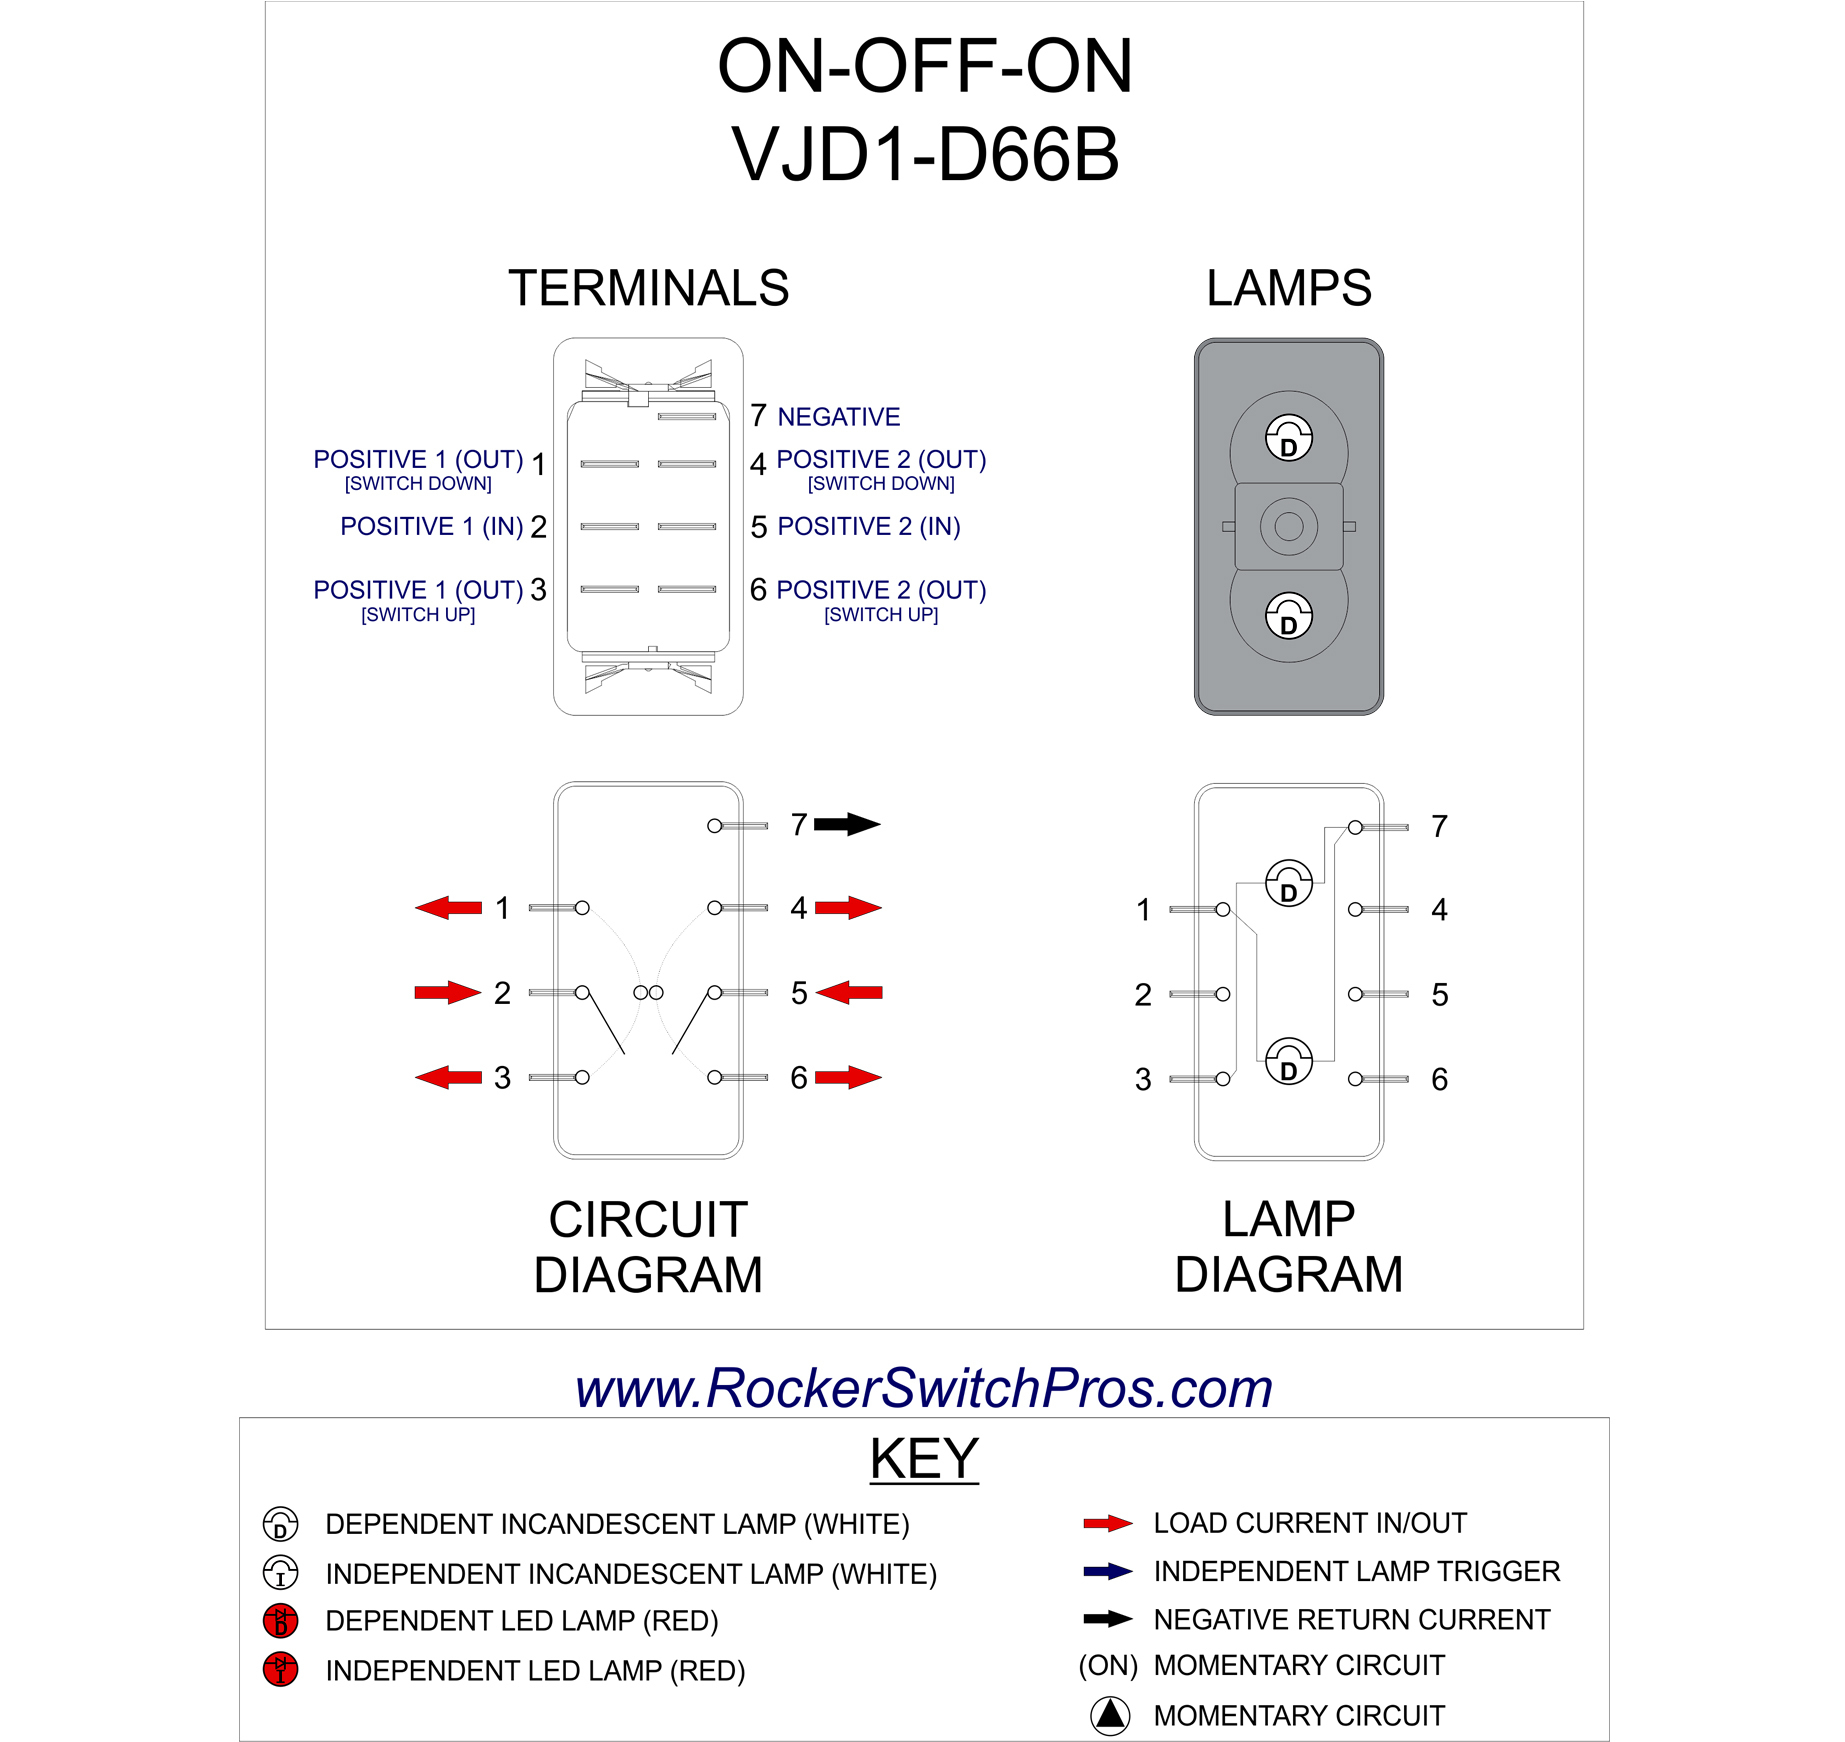 Dpdt Switch Wiring Diagram For Wye | Manual E-Books - Dpdt Switch Wiring Diagram